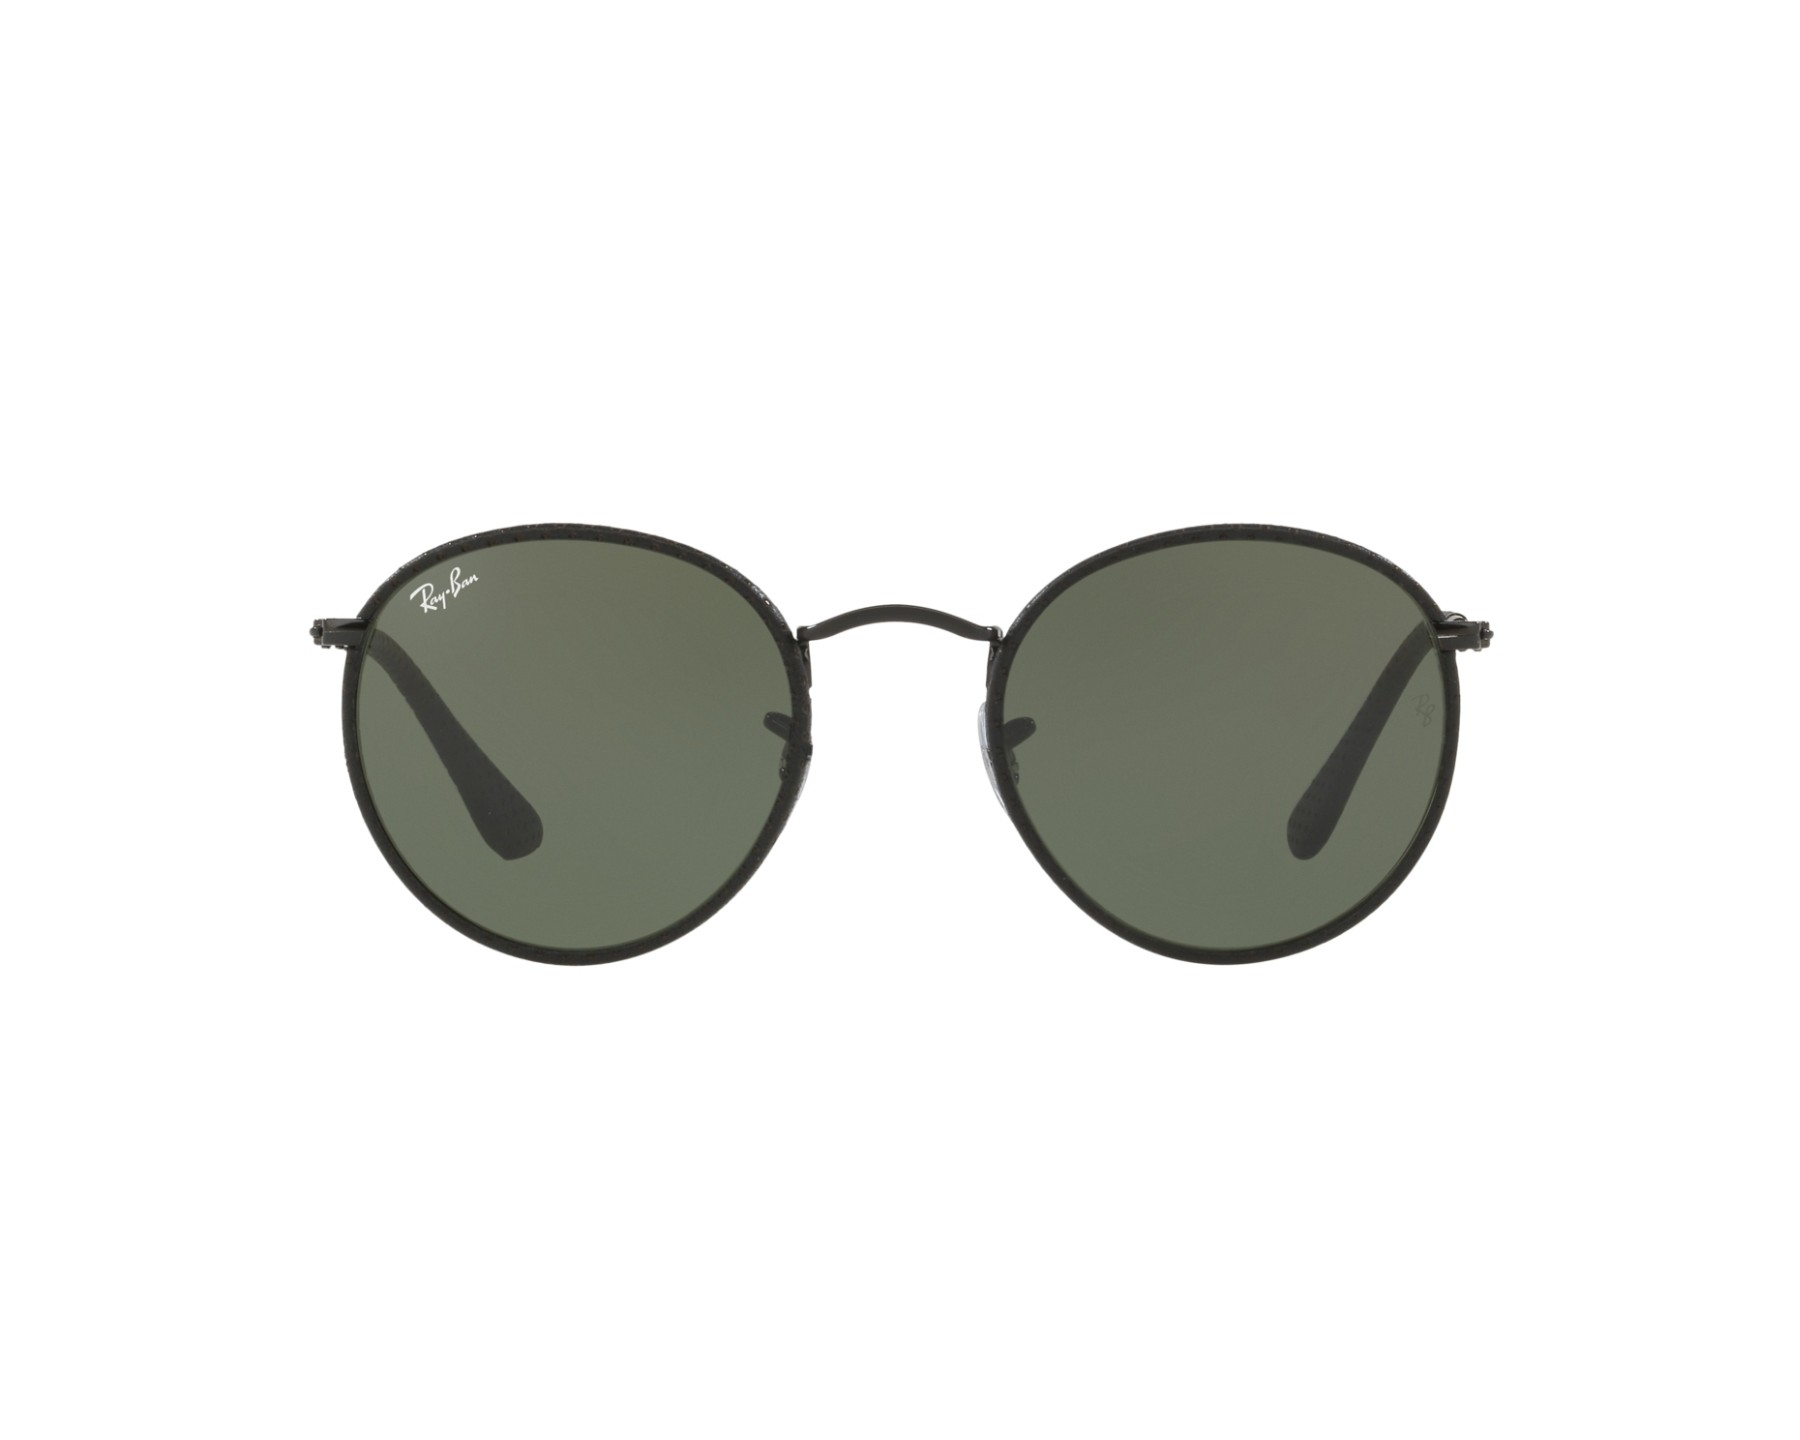 Ray-Ban RB3475Q 9040 50 mm/21 mm 2P1D3a